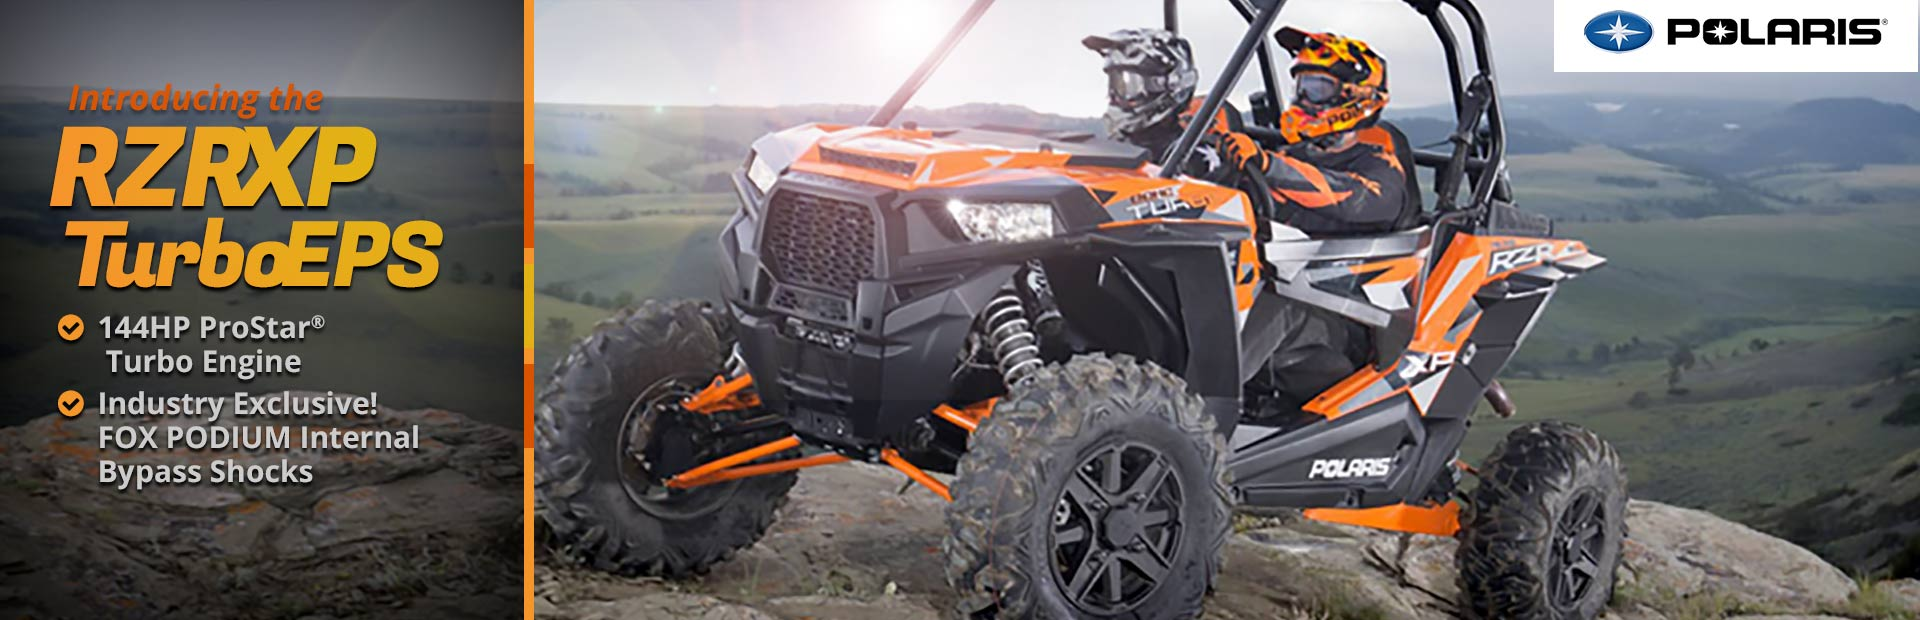 Polaris RZR XP Turbo EPS: Click here to view the models.